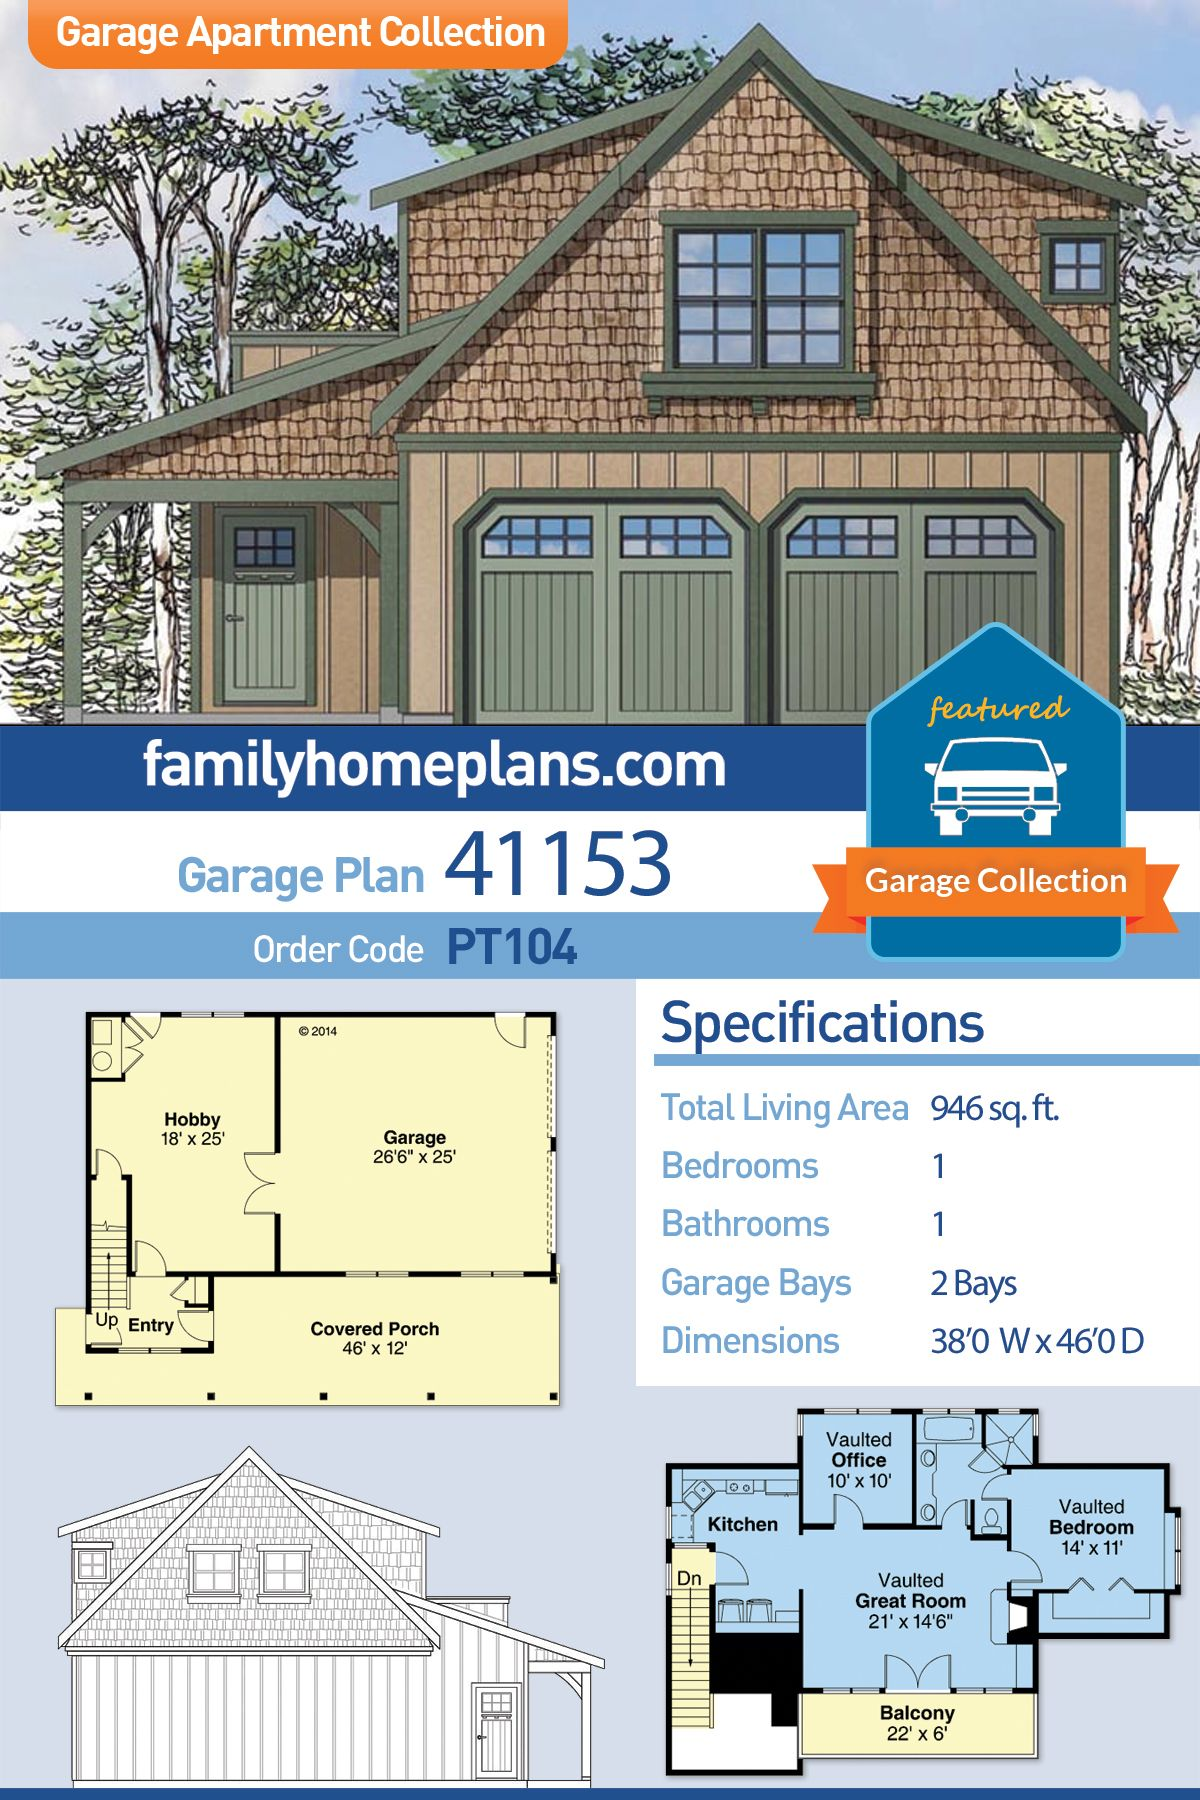 European Style 2 Car Garage Apartment Plan Number 41153 With 1 Bed 1 Bath Carriage House Plans Garage Apartments Garage Apartment Plans